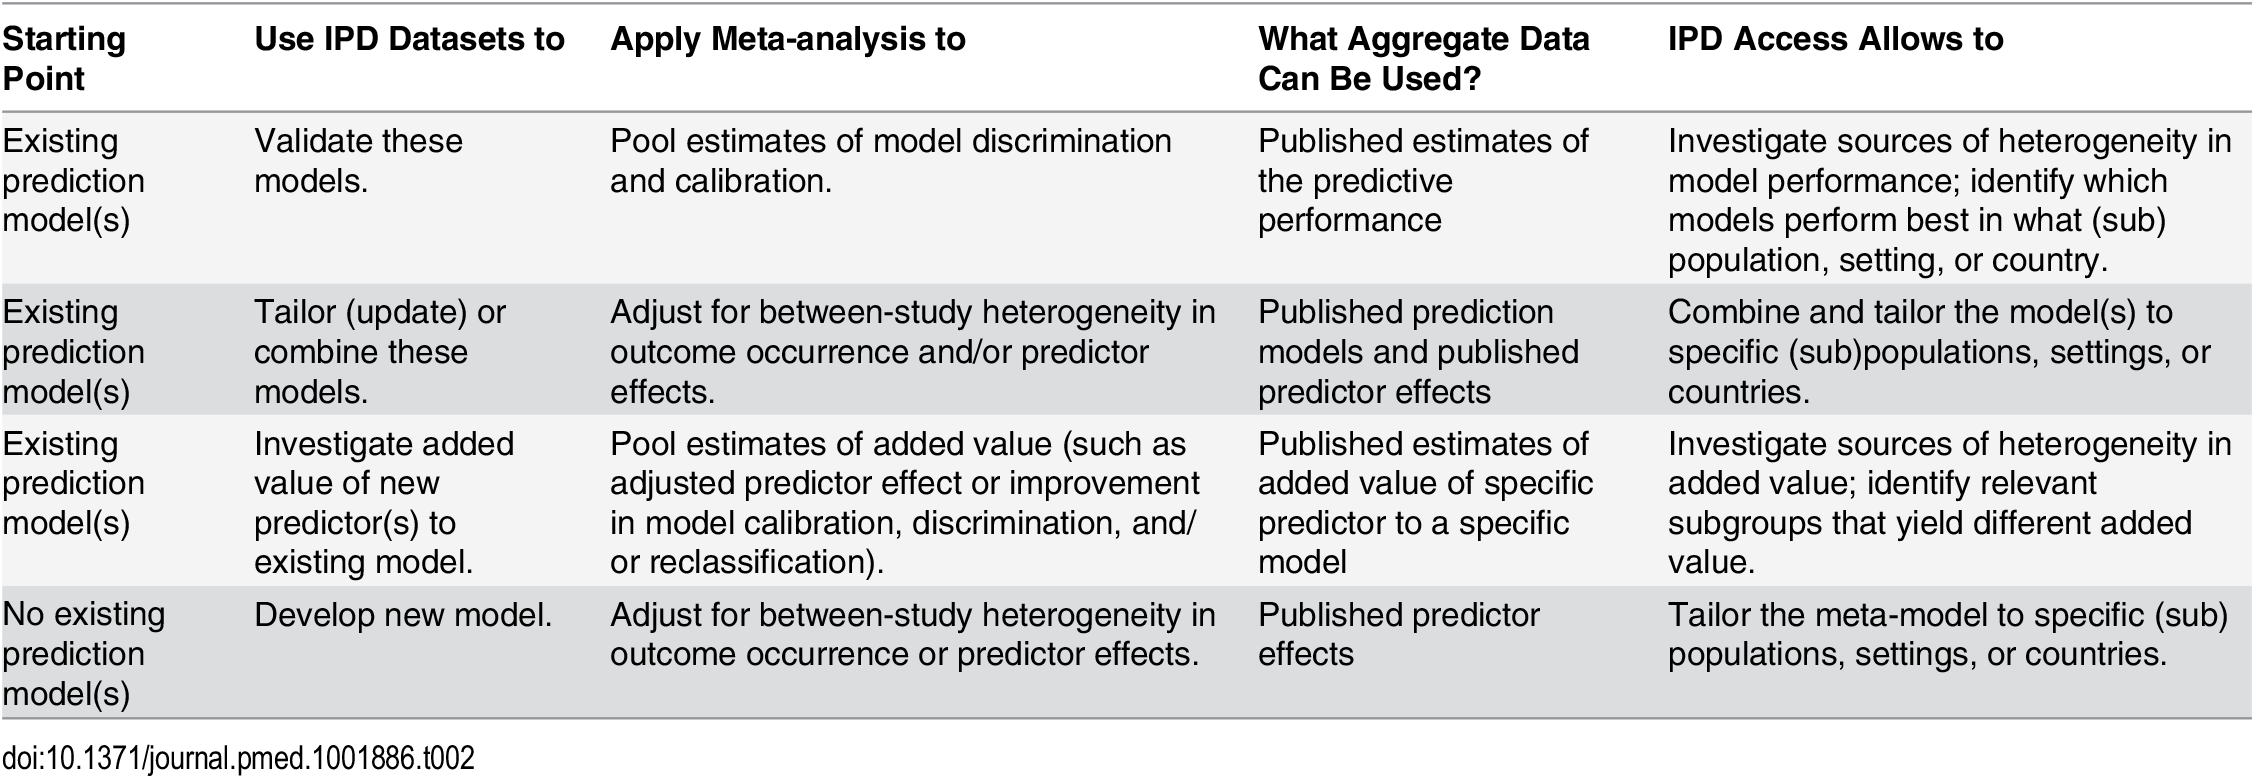 Overview of types (aims) of IPD-MAs of prediction modeling studies.